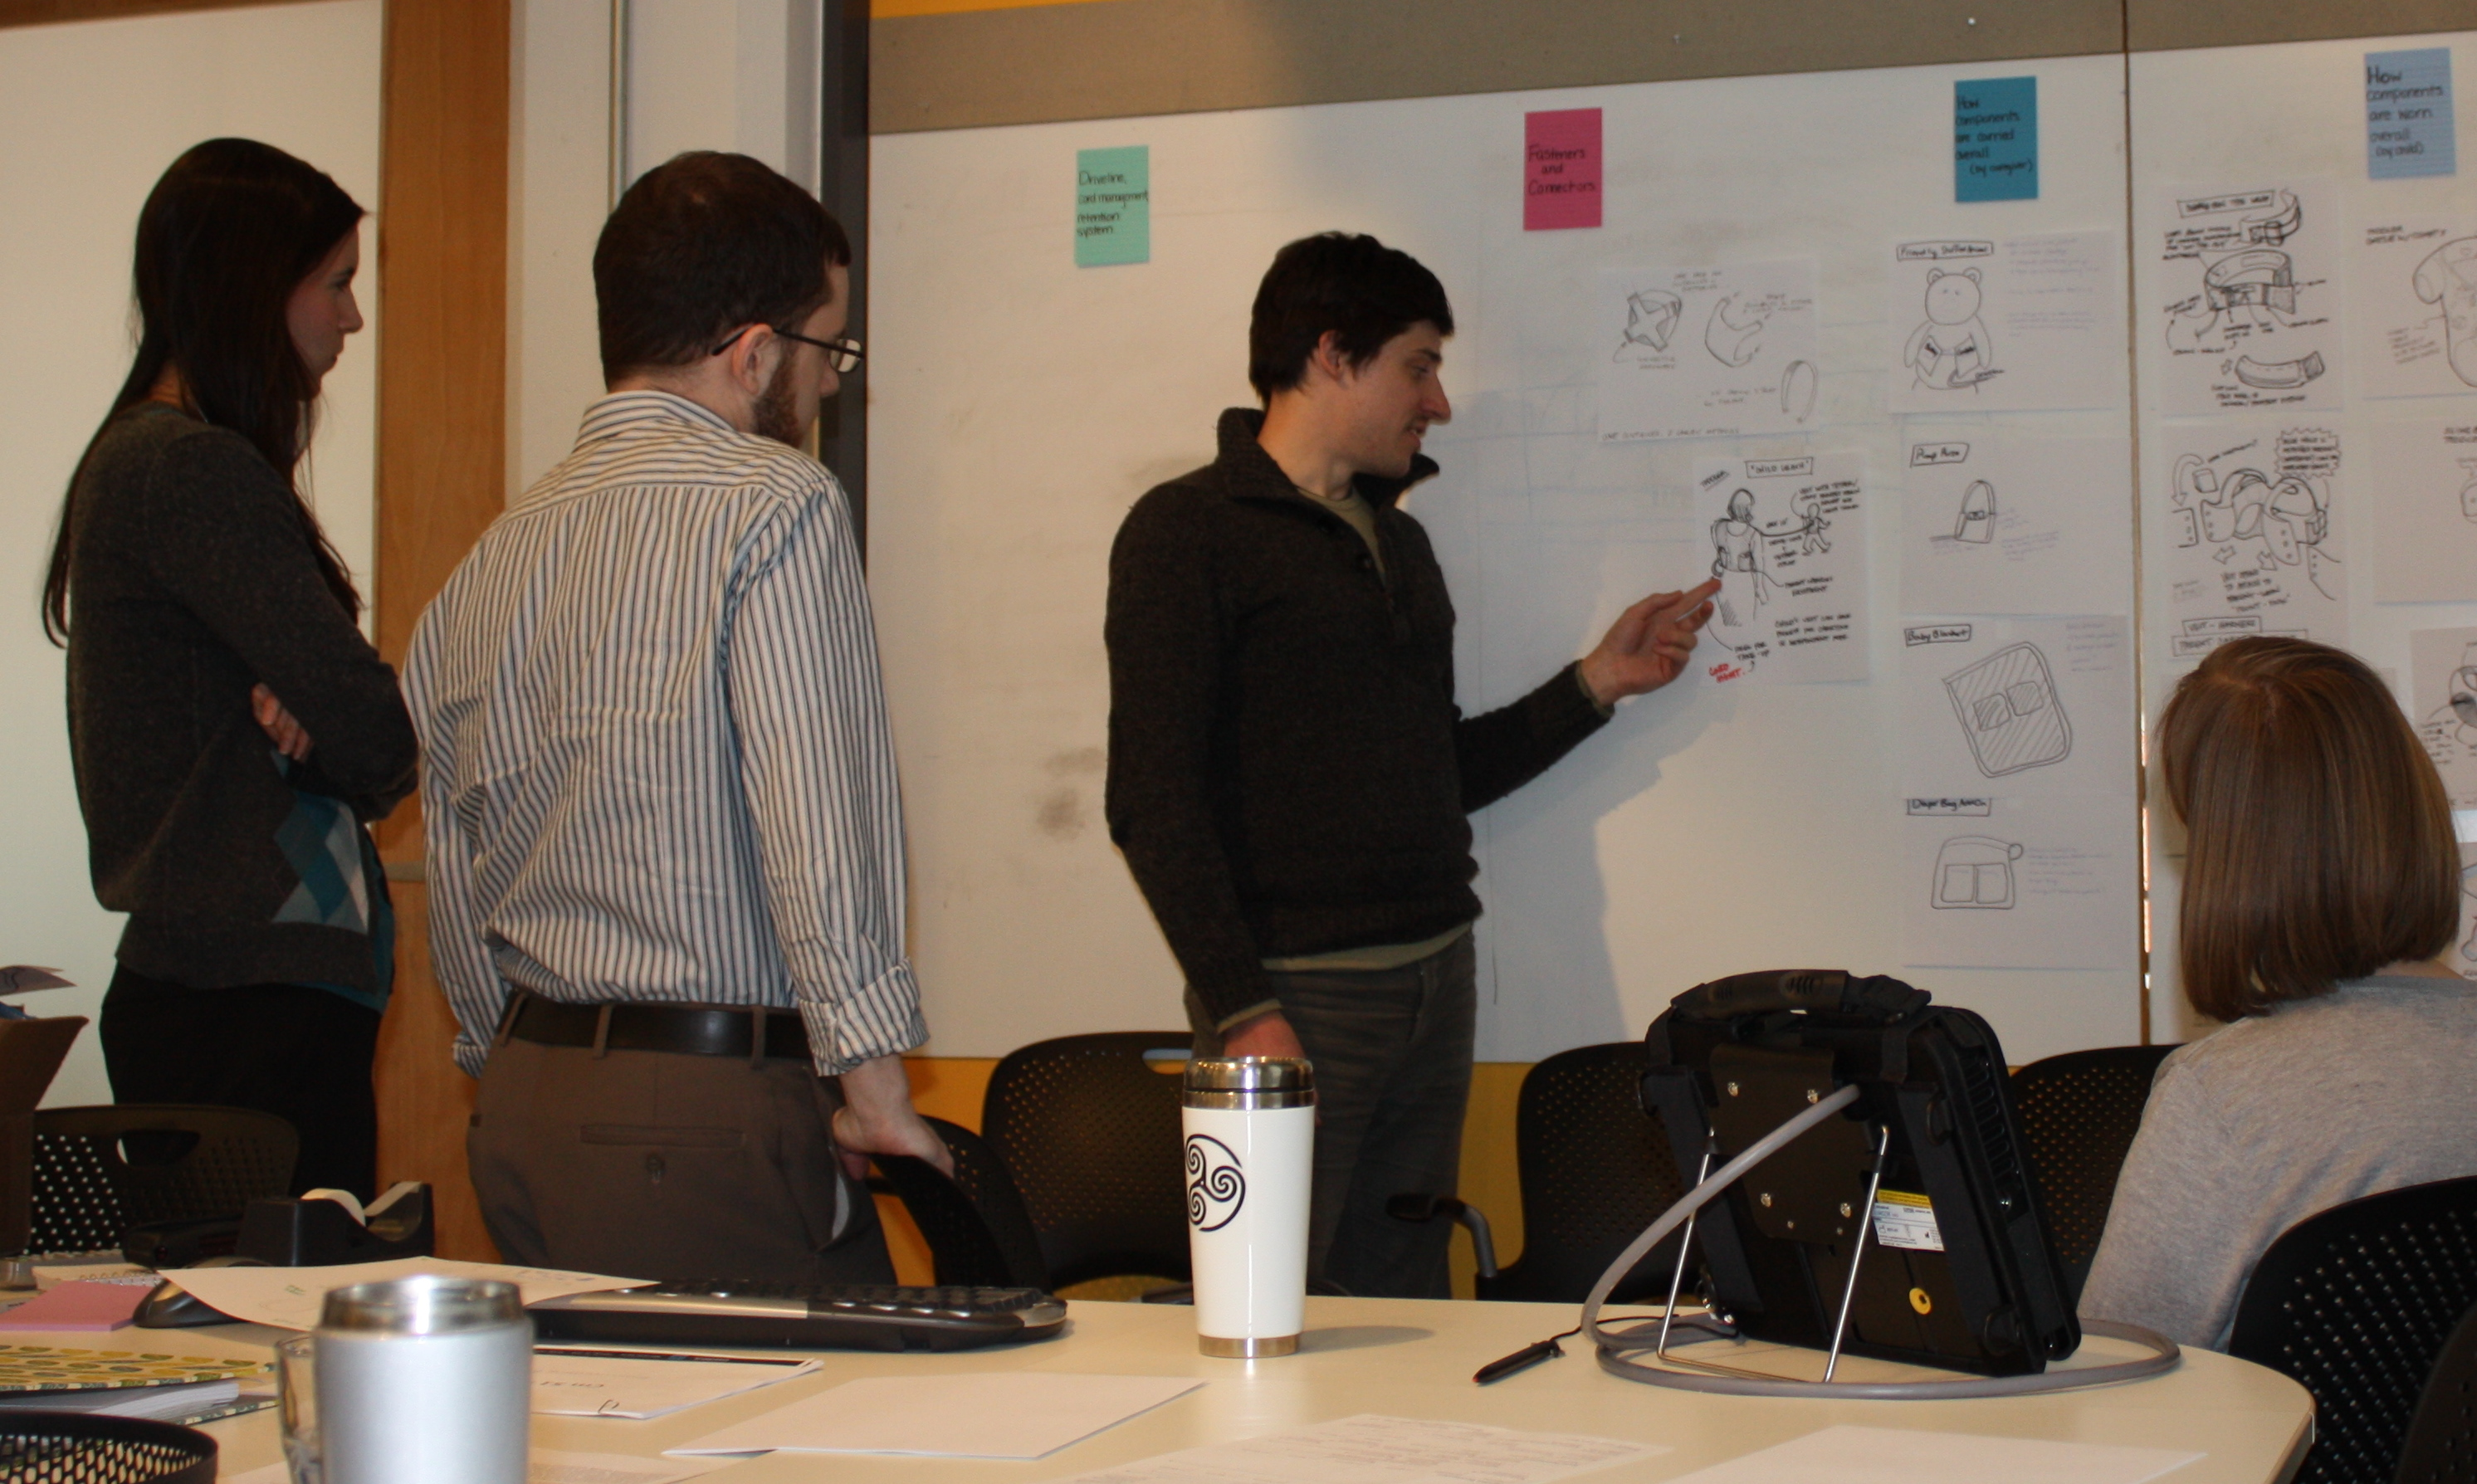 Designers presenting their concepts in a brainstorming session